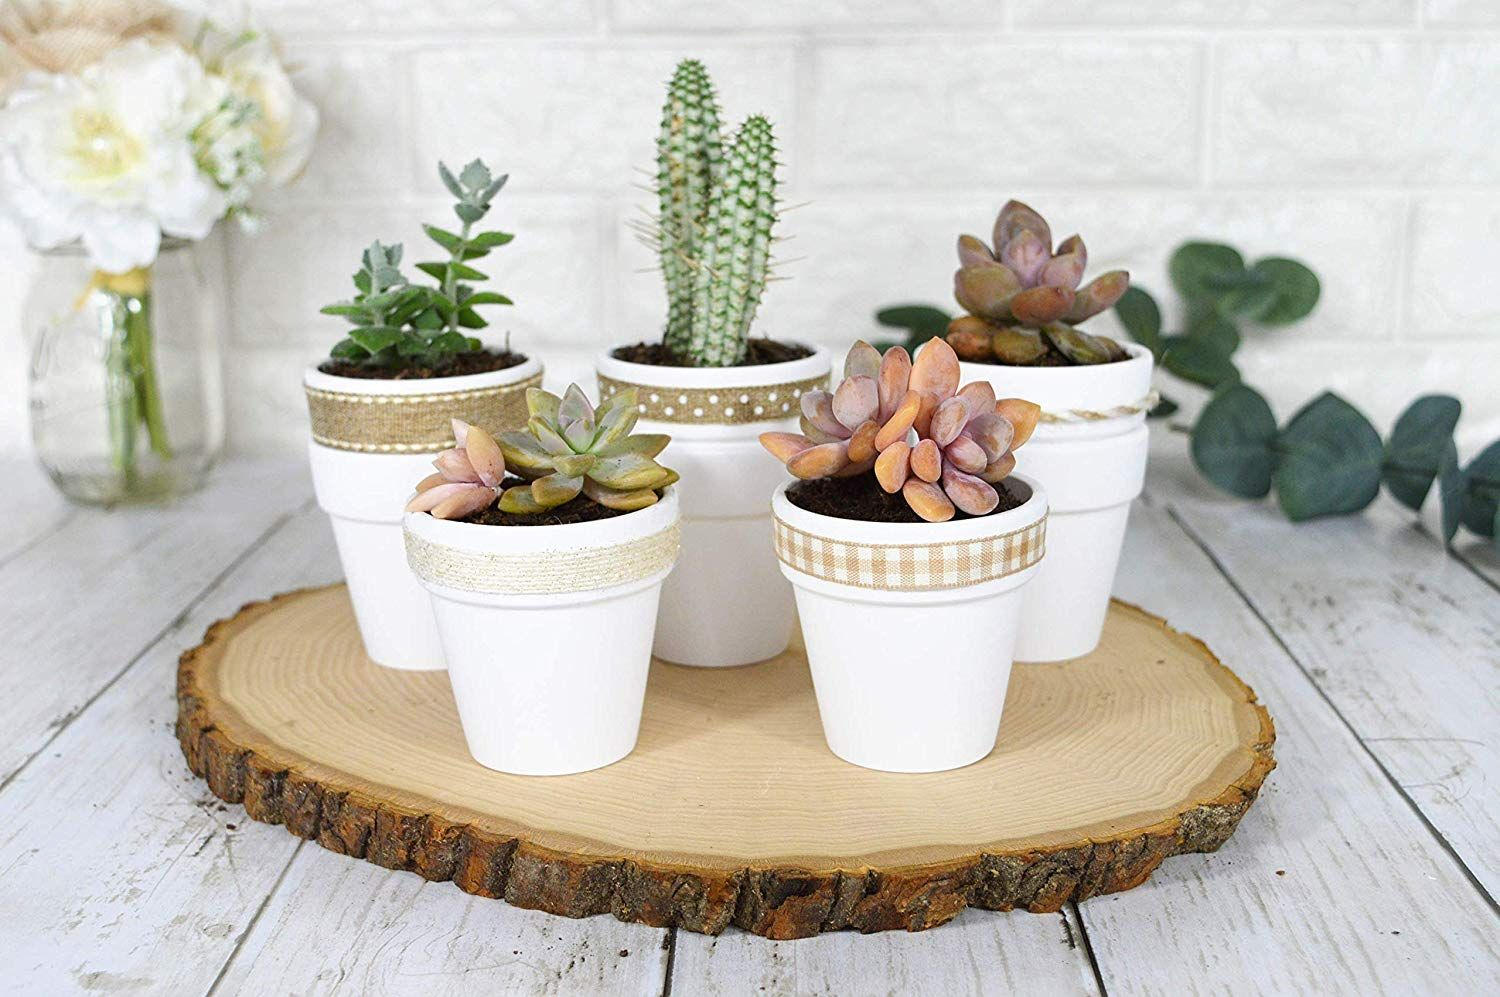 Amazon Com My Urban Crafts 40 Pcs 2 5 Mini Clay Pots Small Terracotta Pots Ceramic Pottery Planters Cactu Succulent Pots Terracotta Flower Pots Flower Pots